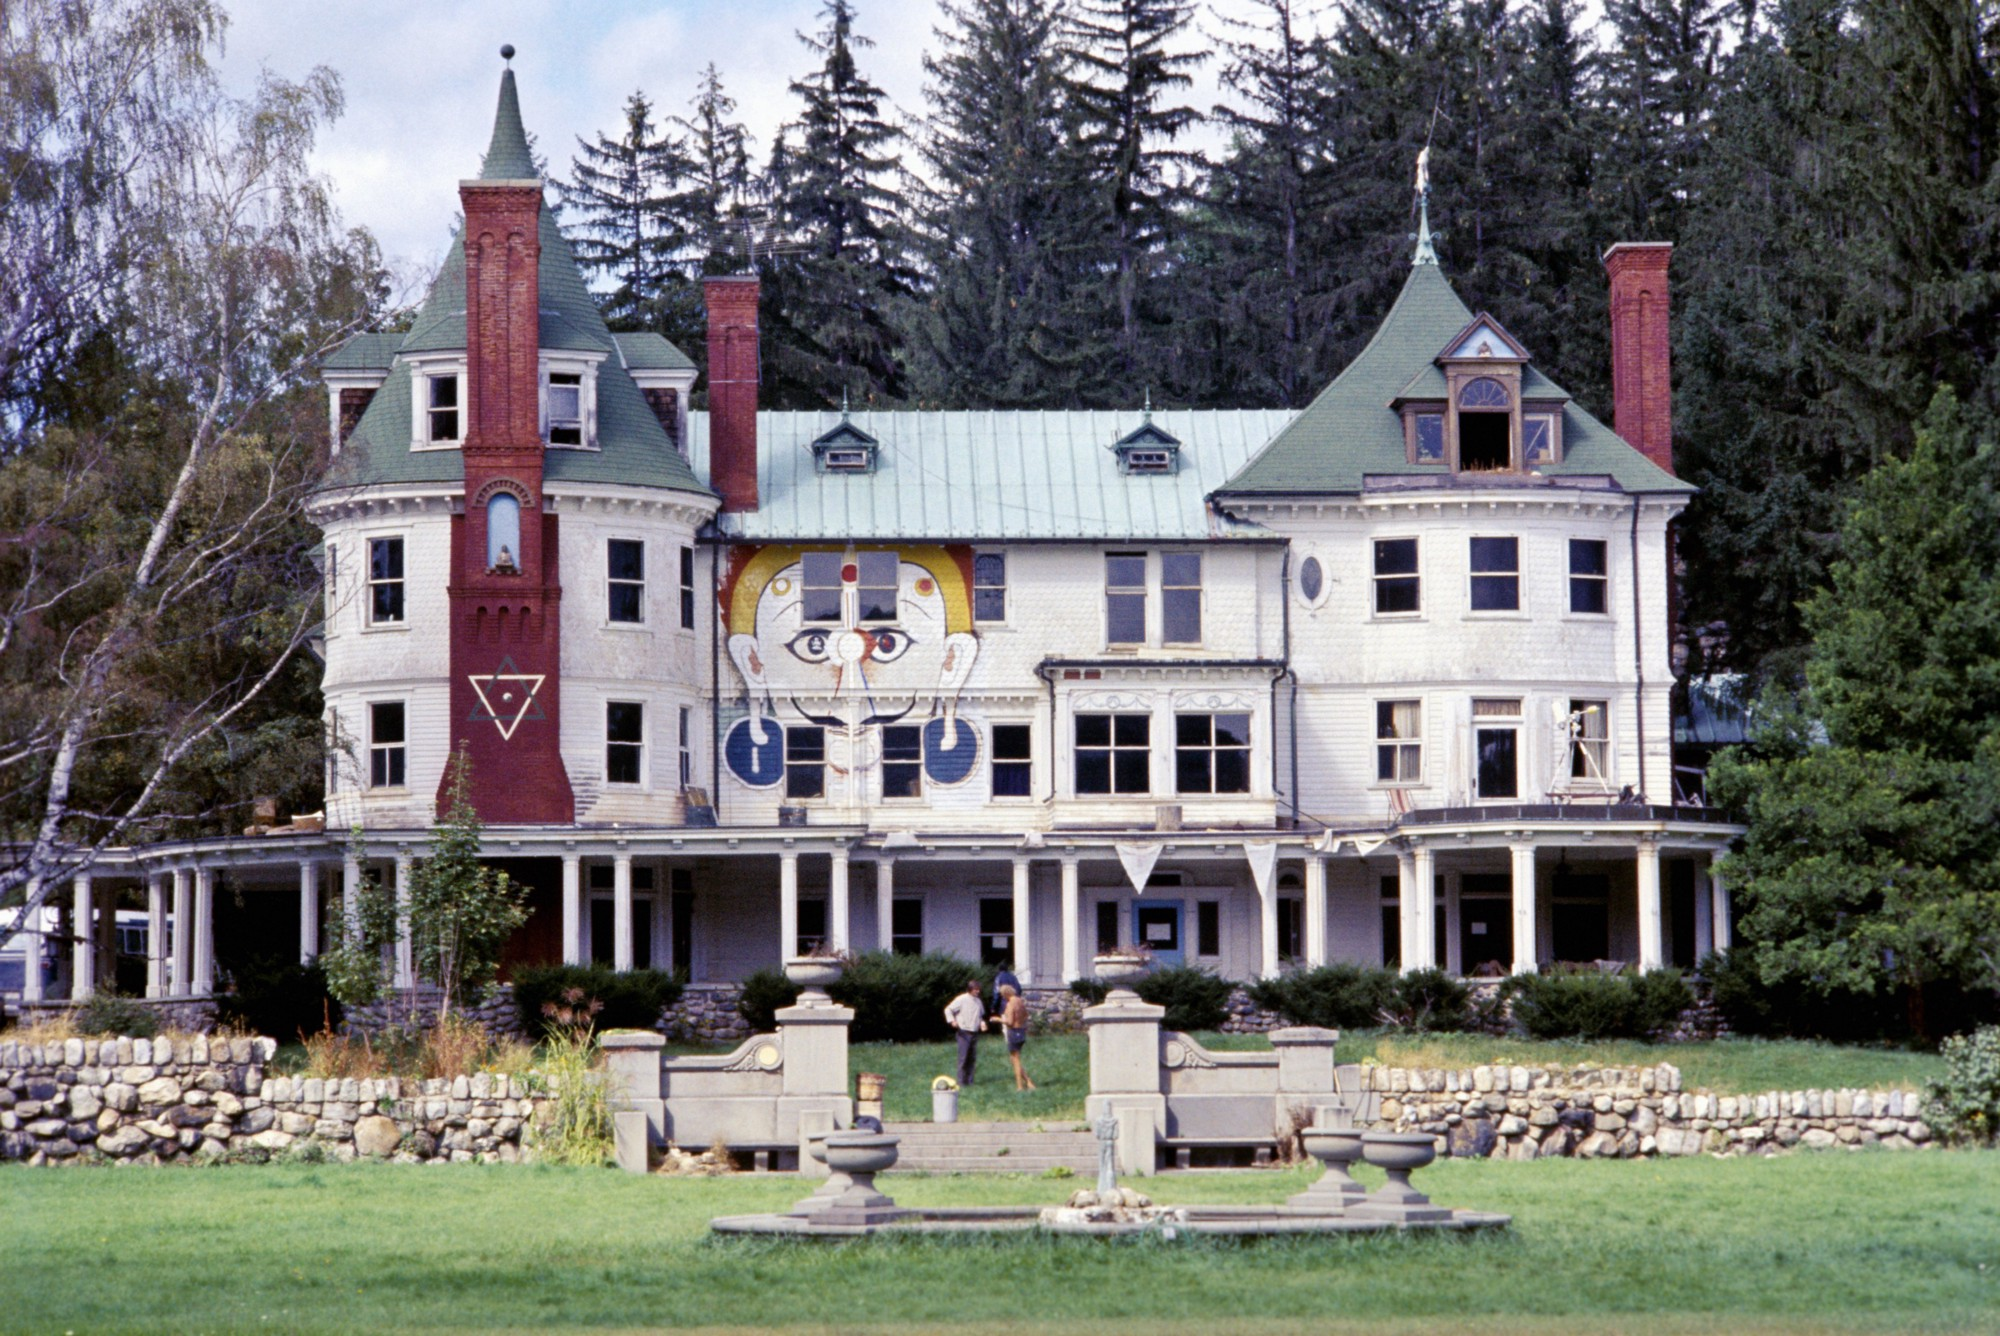 Billy Hitchcock's country estate in Millbrook, New York, was occupied by Timothy Leary and his followers during much of 1967. (Alvis Upitis/Getty Images)